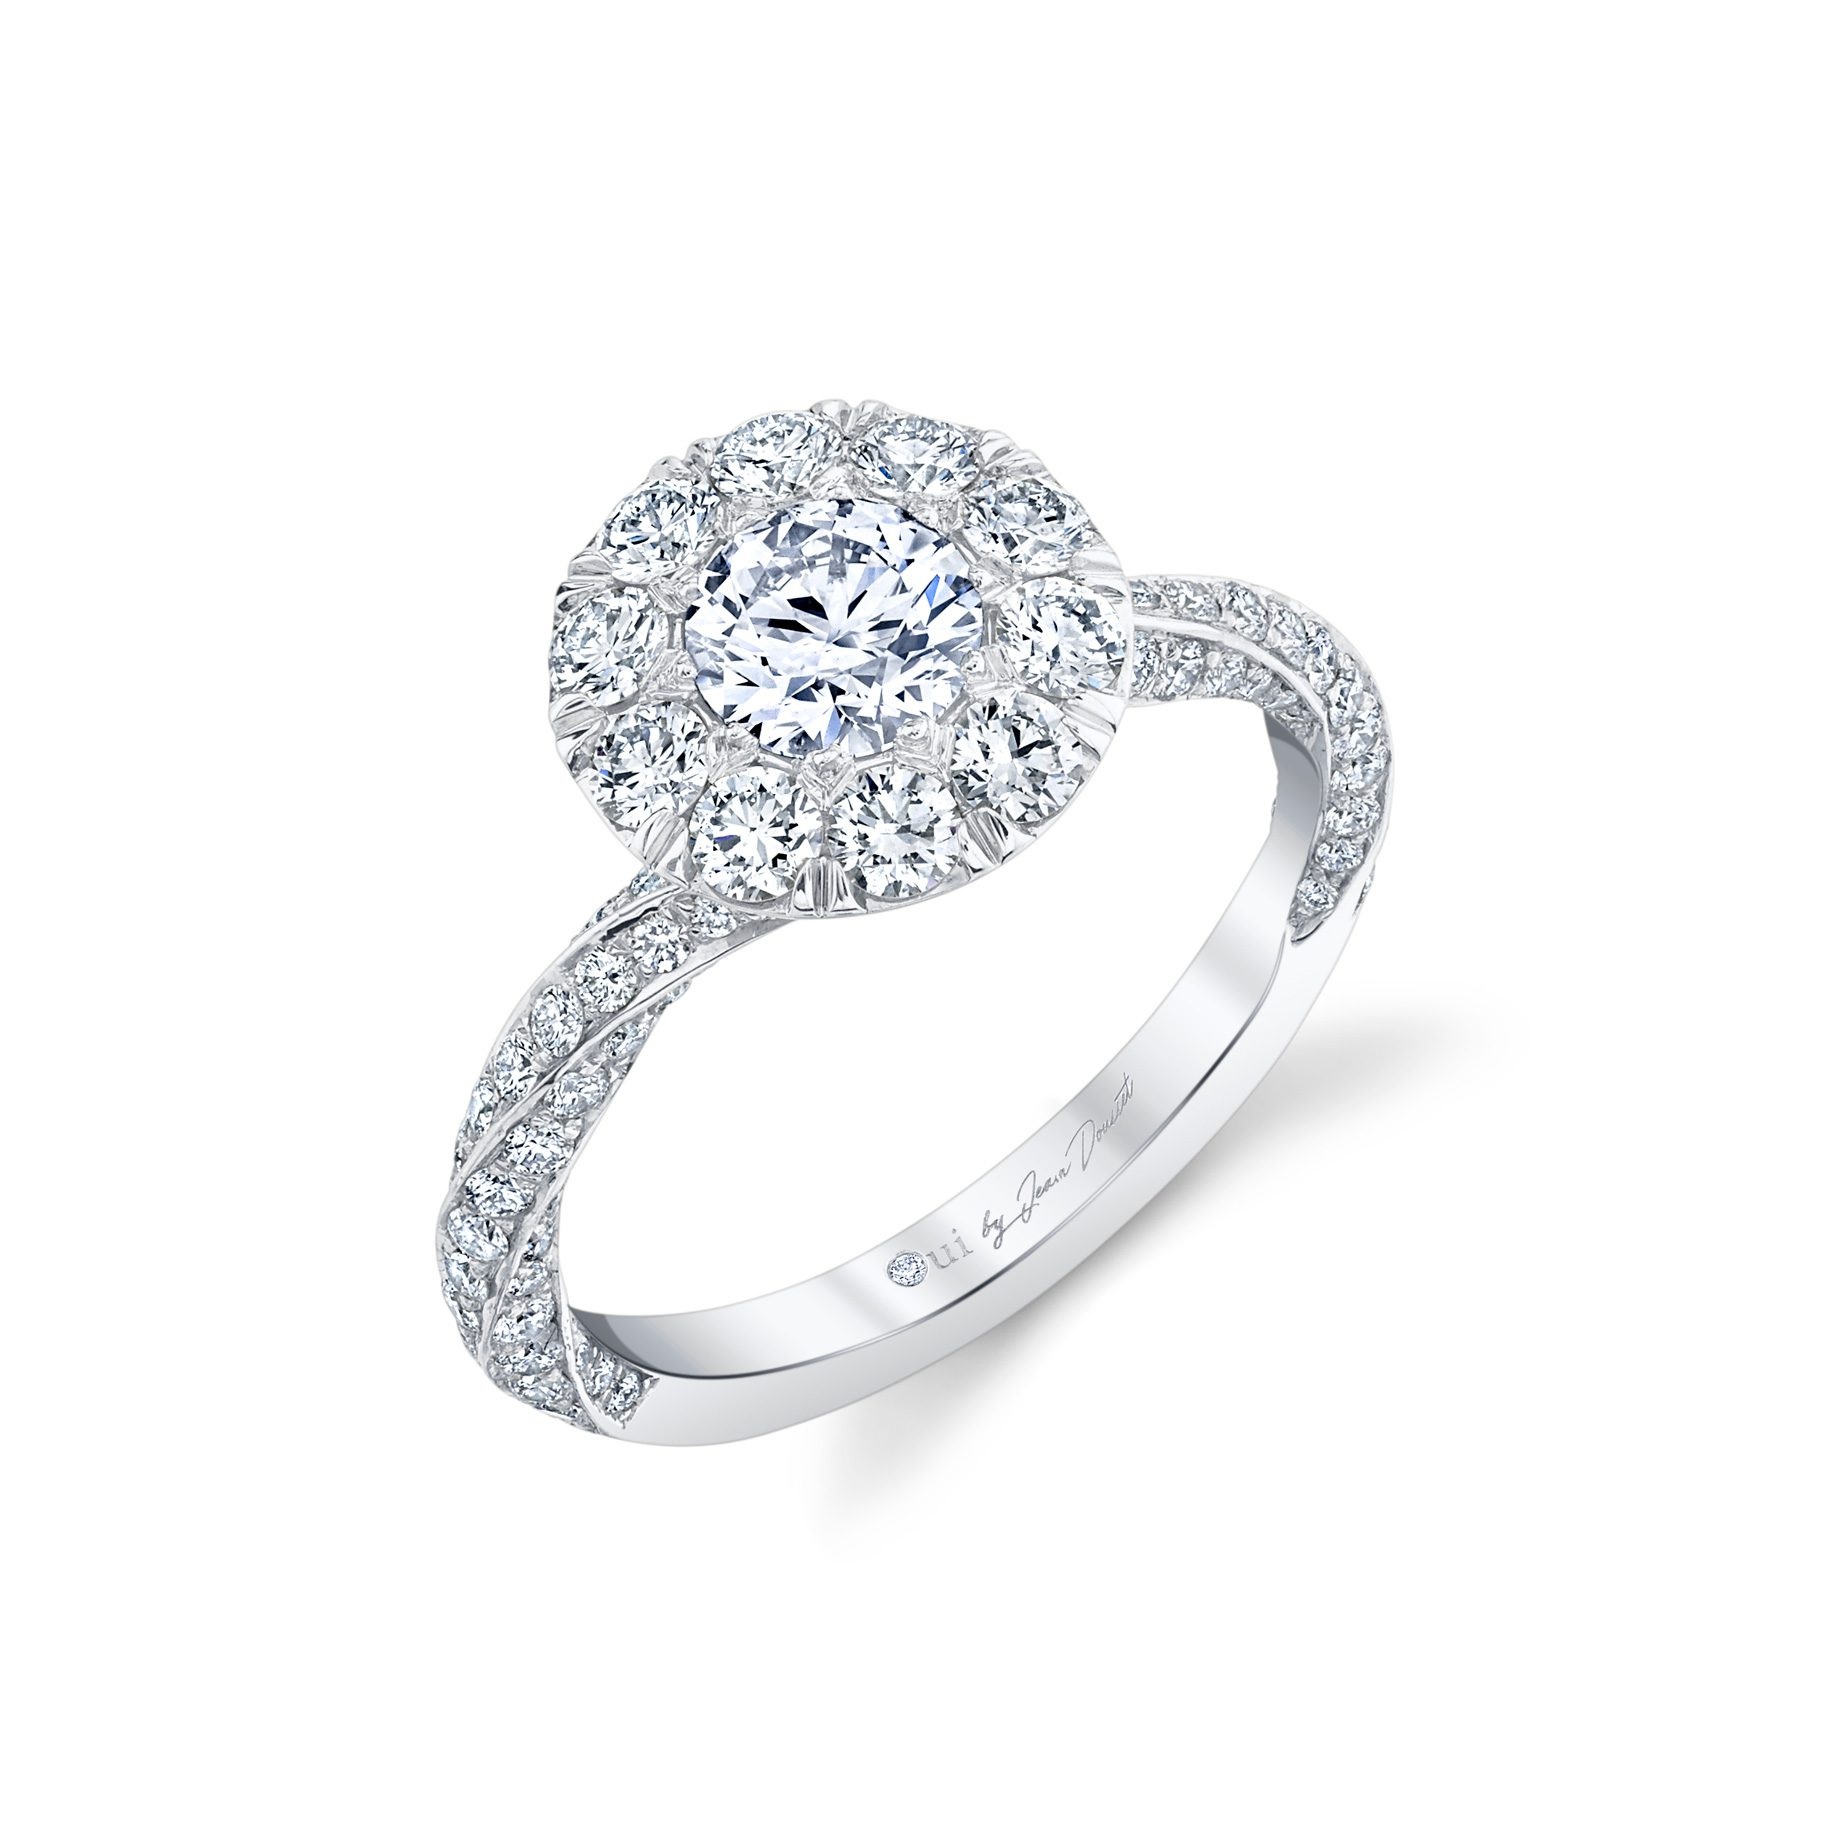 Camille Floating Round Brilliant Seamless Solitaire™ Engagement Ring with diamond pavé in 18k White Gold Back View by Oui by Jean Dousset